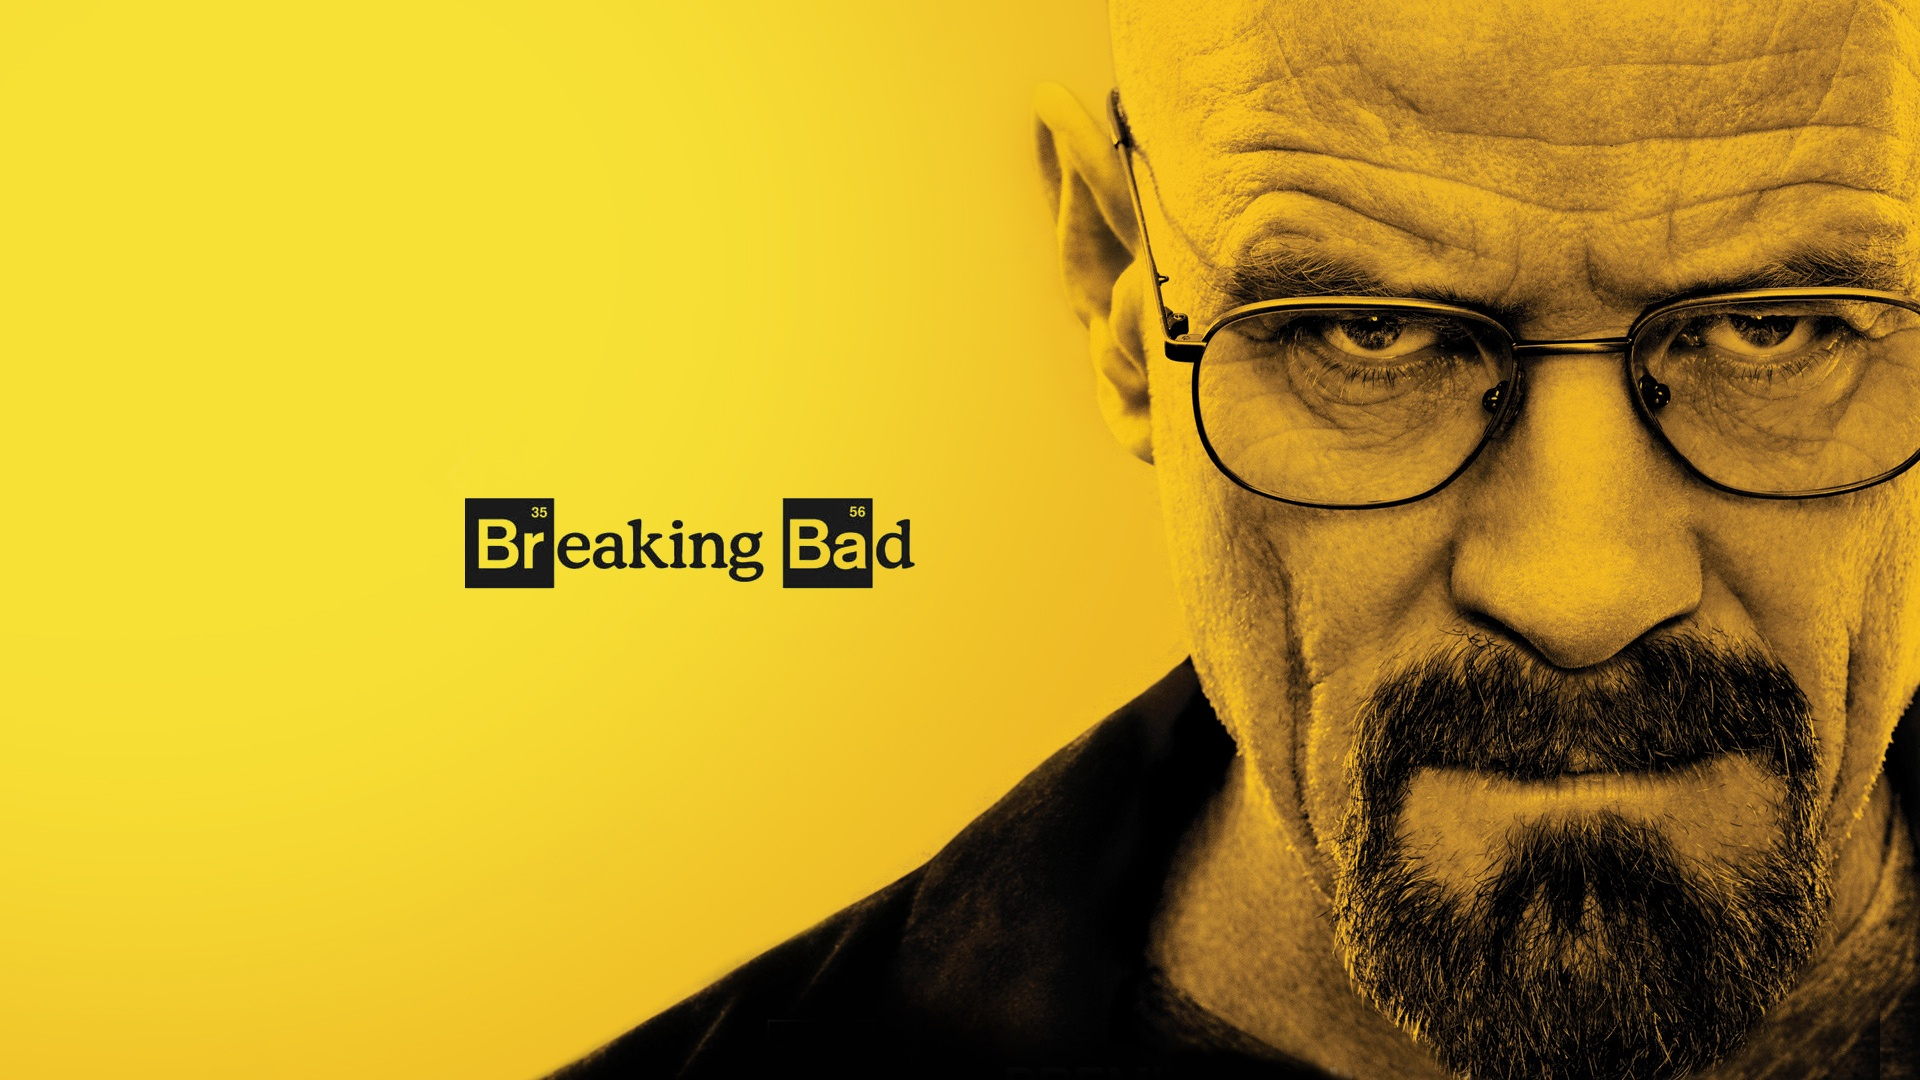 Breaking Bad Res: 1920x1080 HD / Size:505kb. Views: 445601